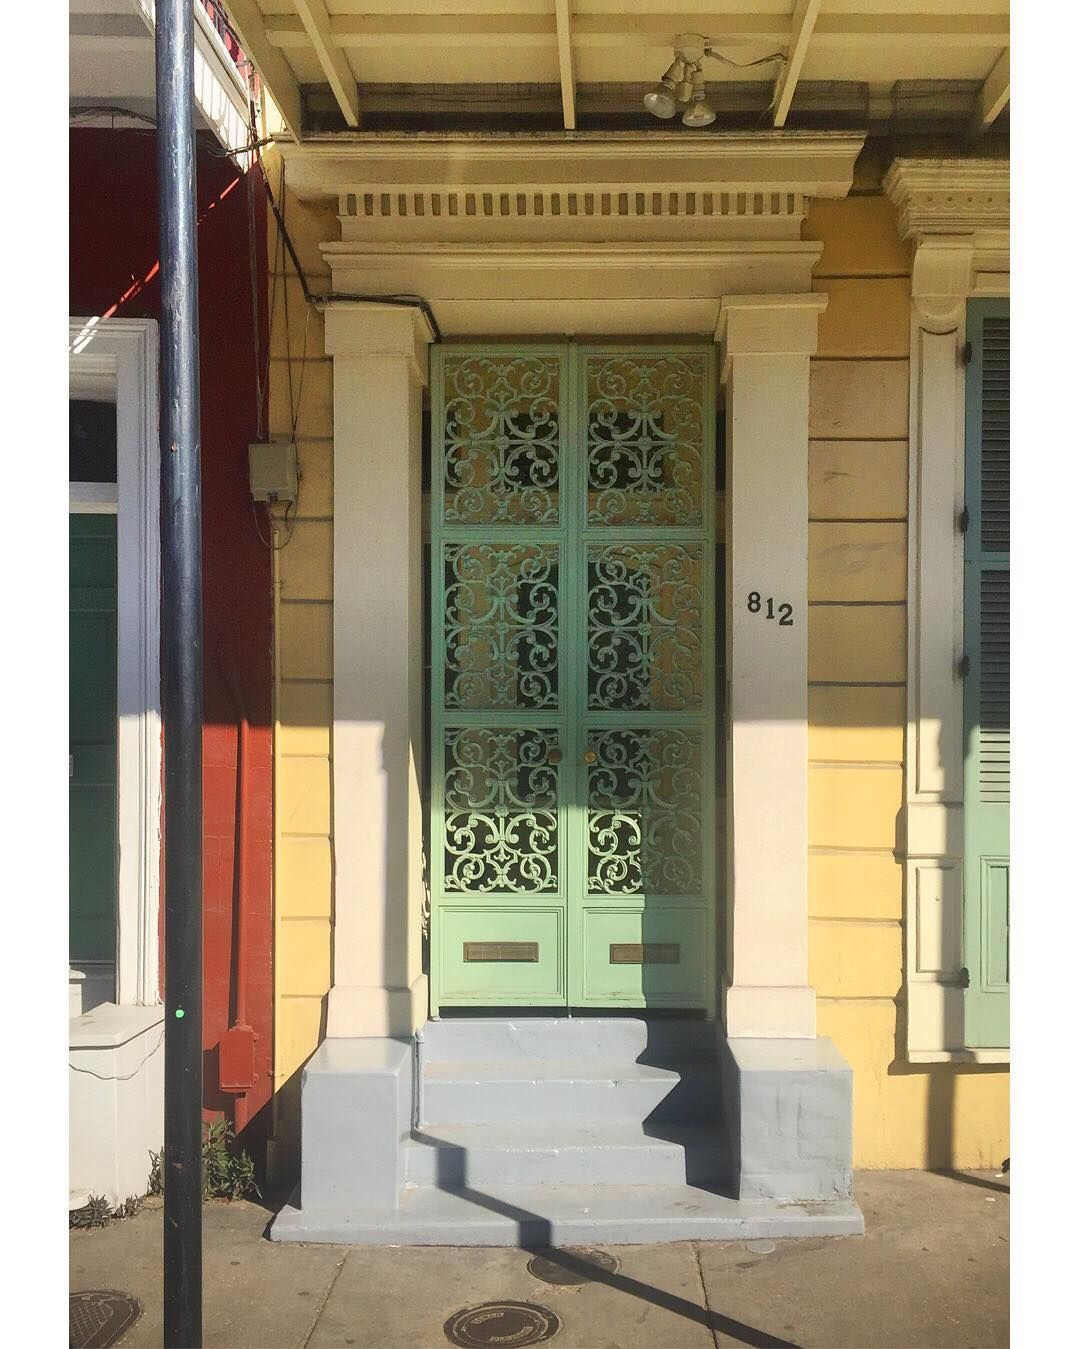 Historic New Orleans Greek Revival door with Doric pilaster surround and cast iron gate in & Historic New Orleans: Greek Revival door with Doric pilaster ...